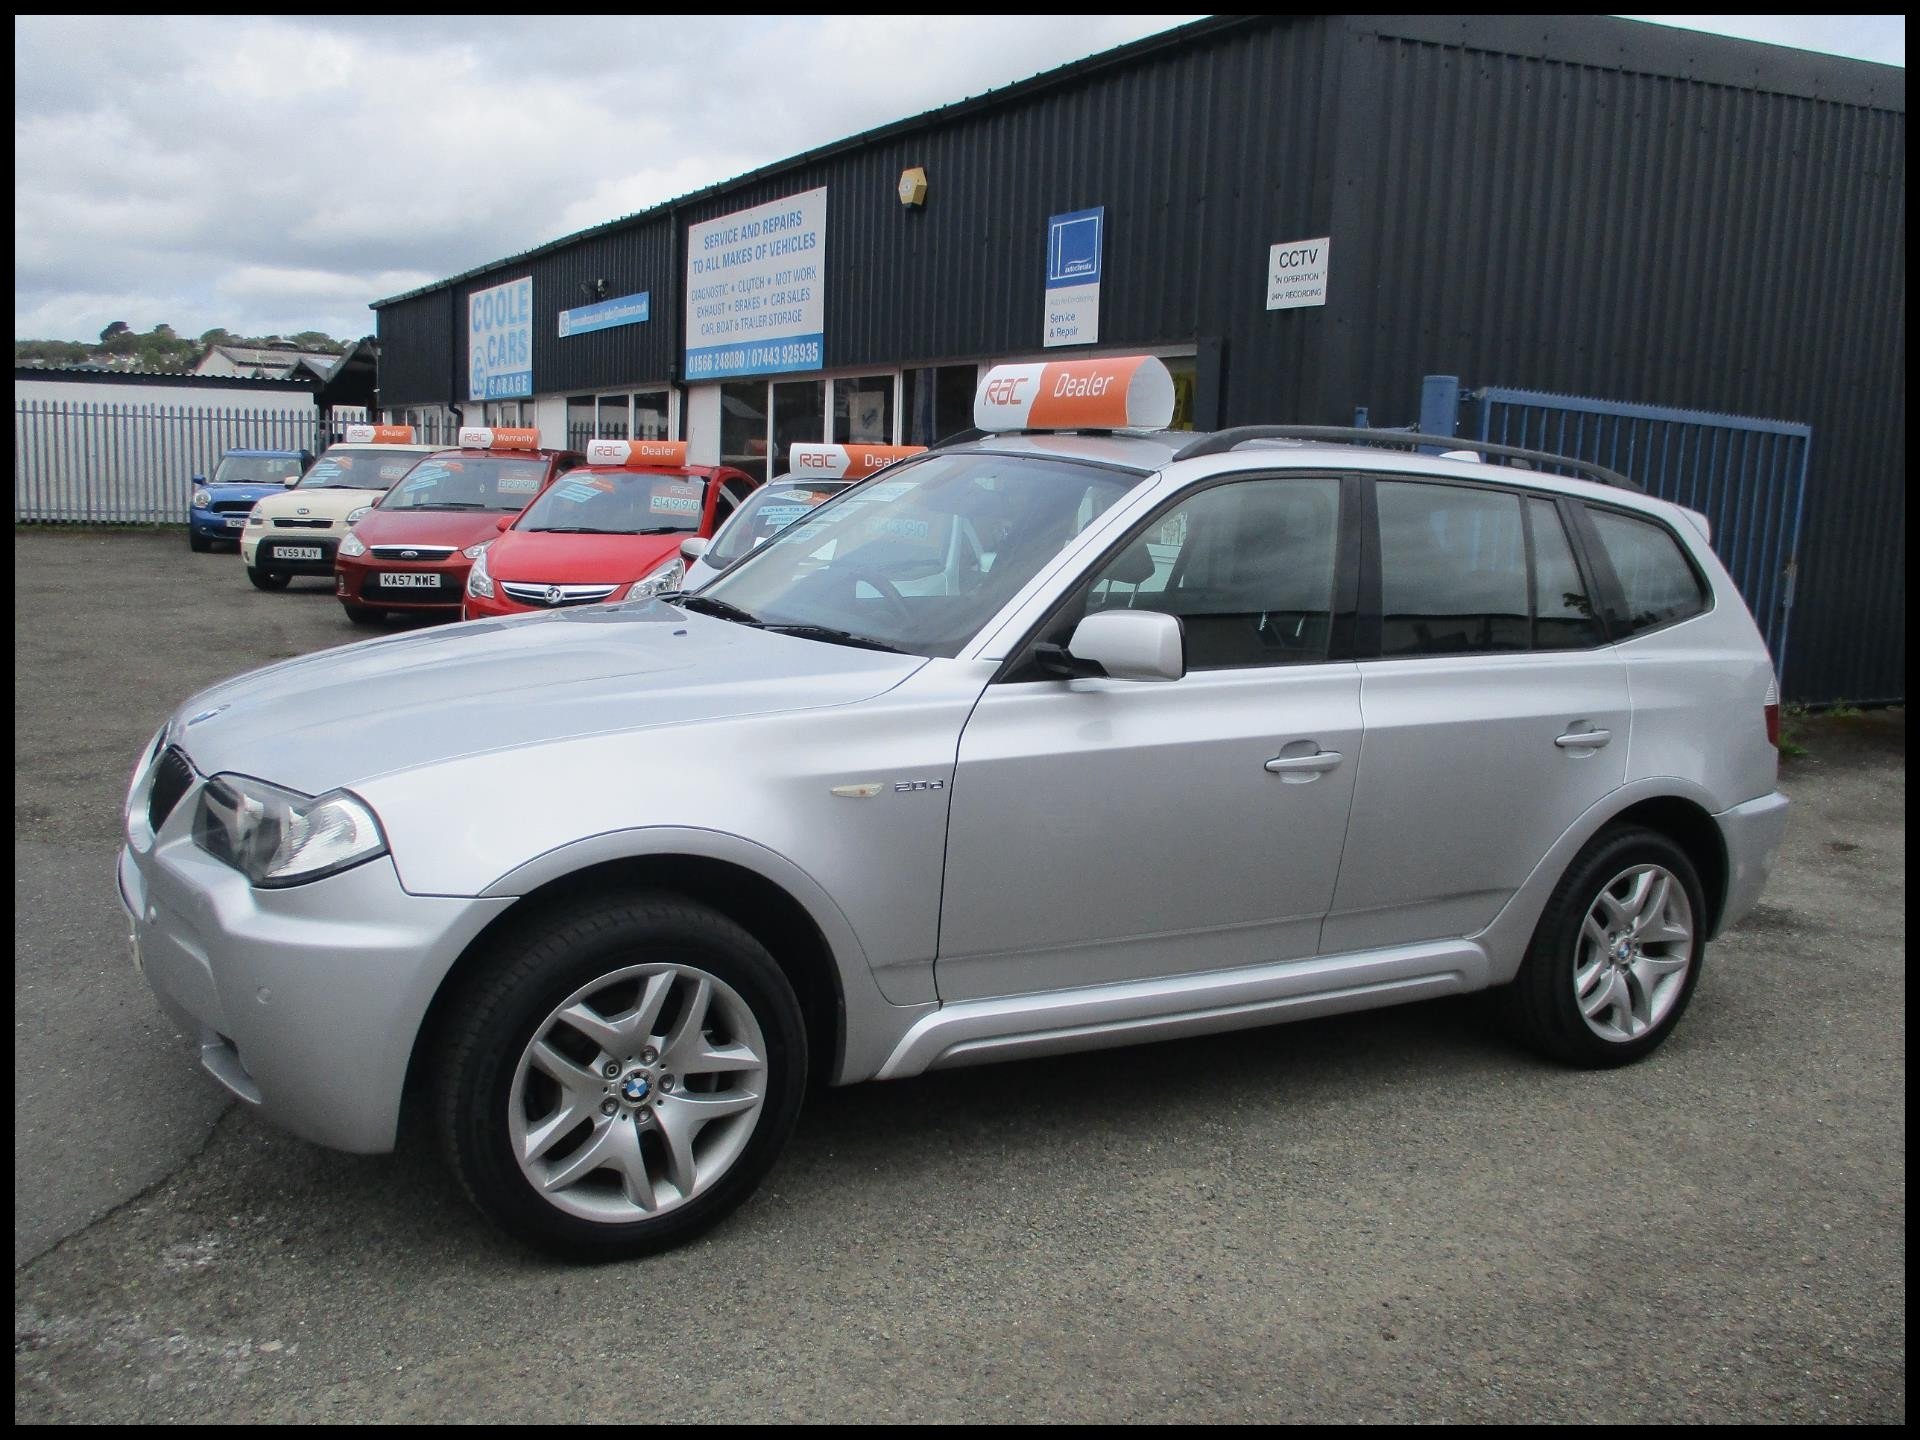 Bmw Extended Warranty Beautiful Bmw Extended Service Contract Cost Inspirational Used Bmw X3 2 0d M